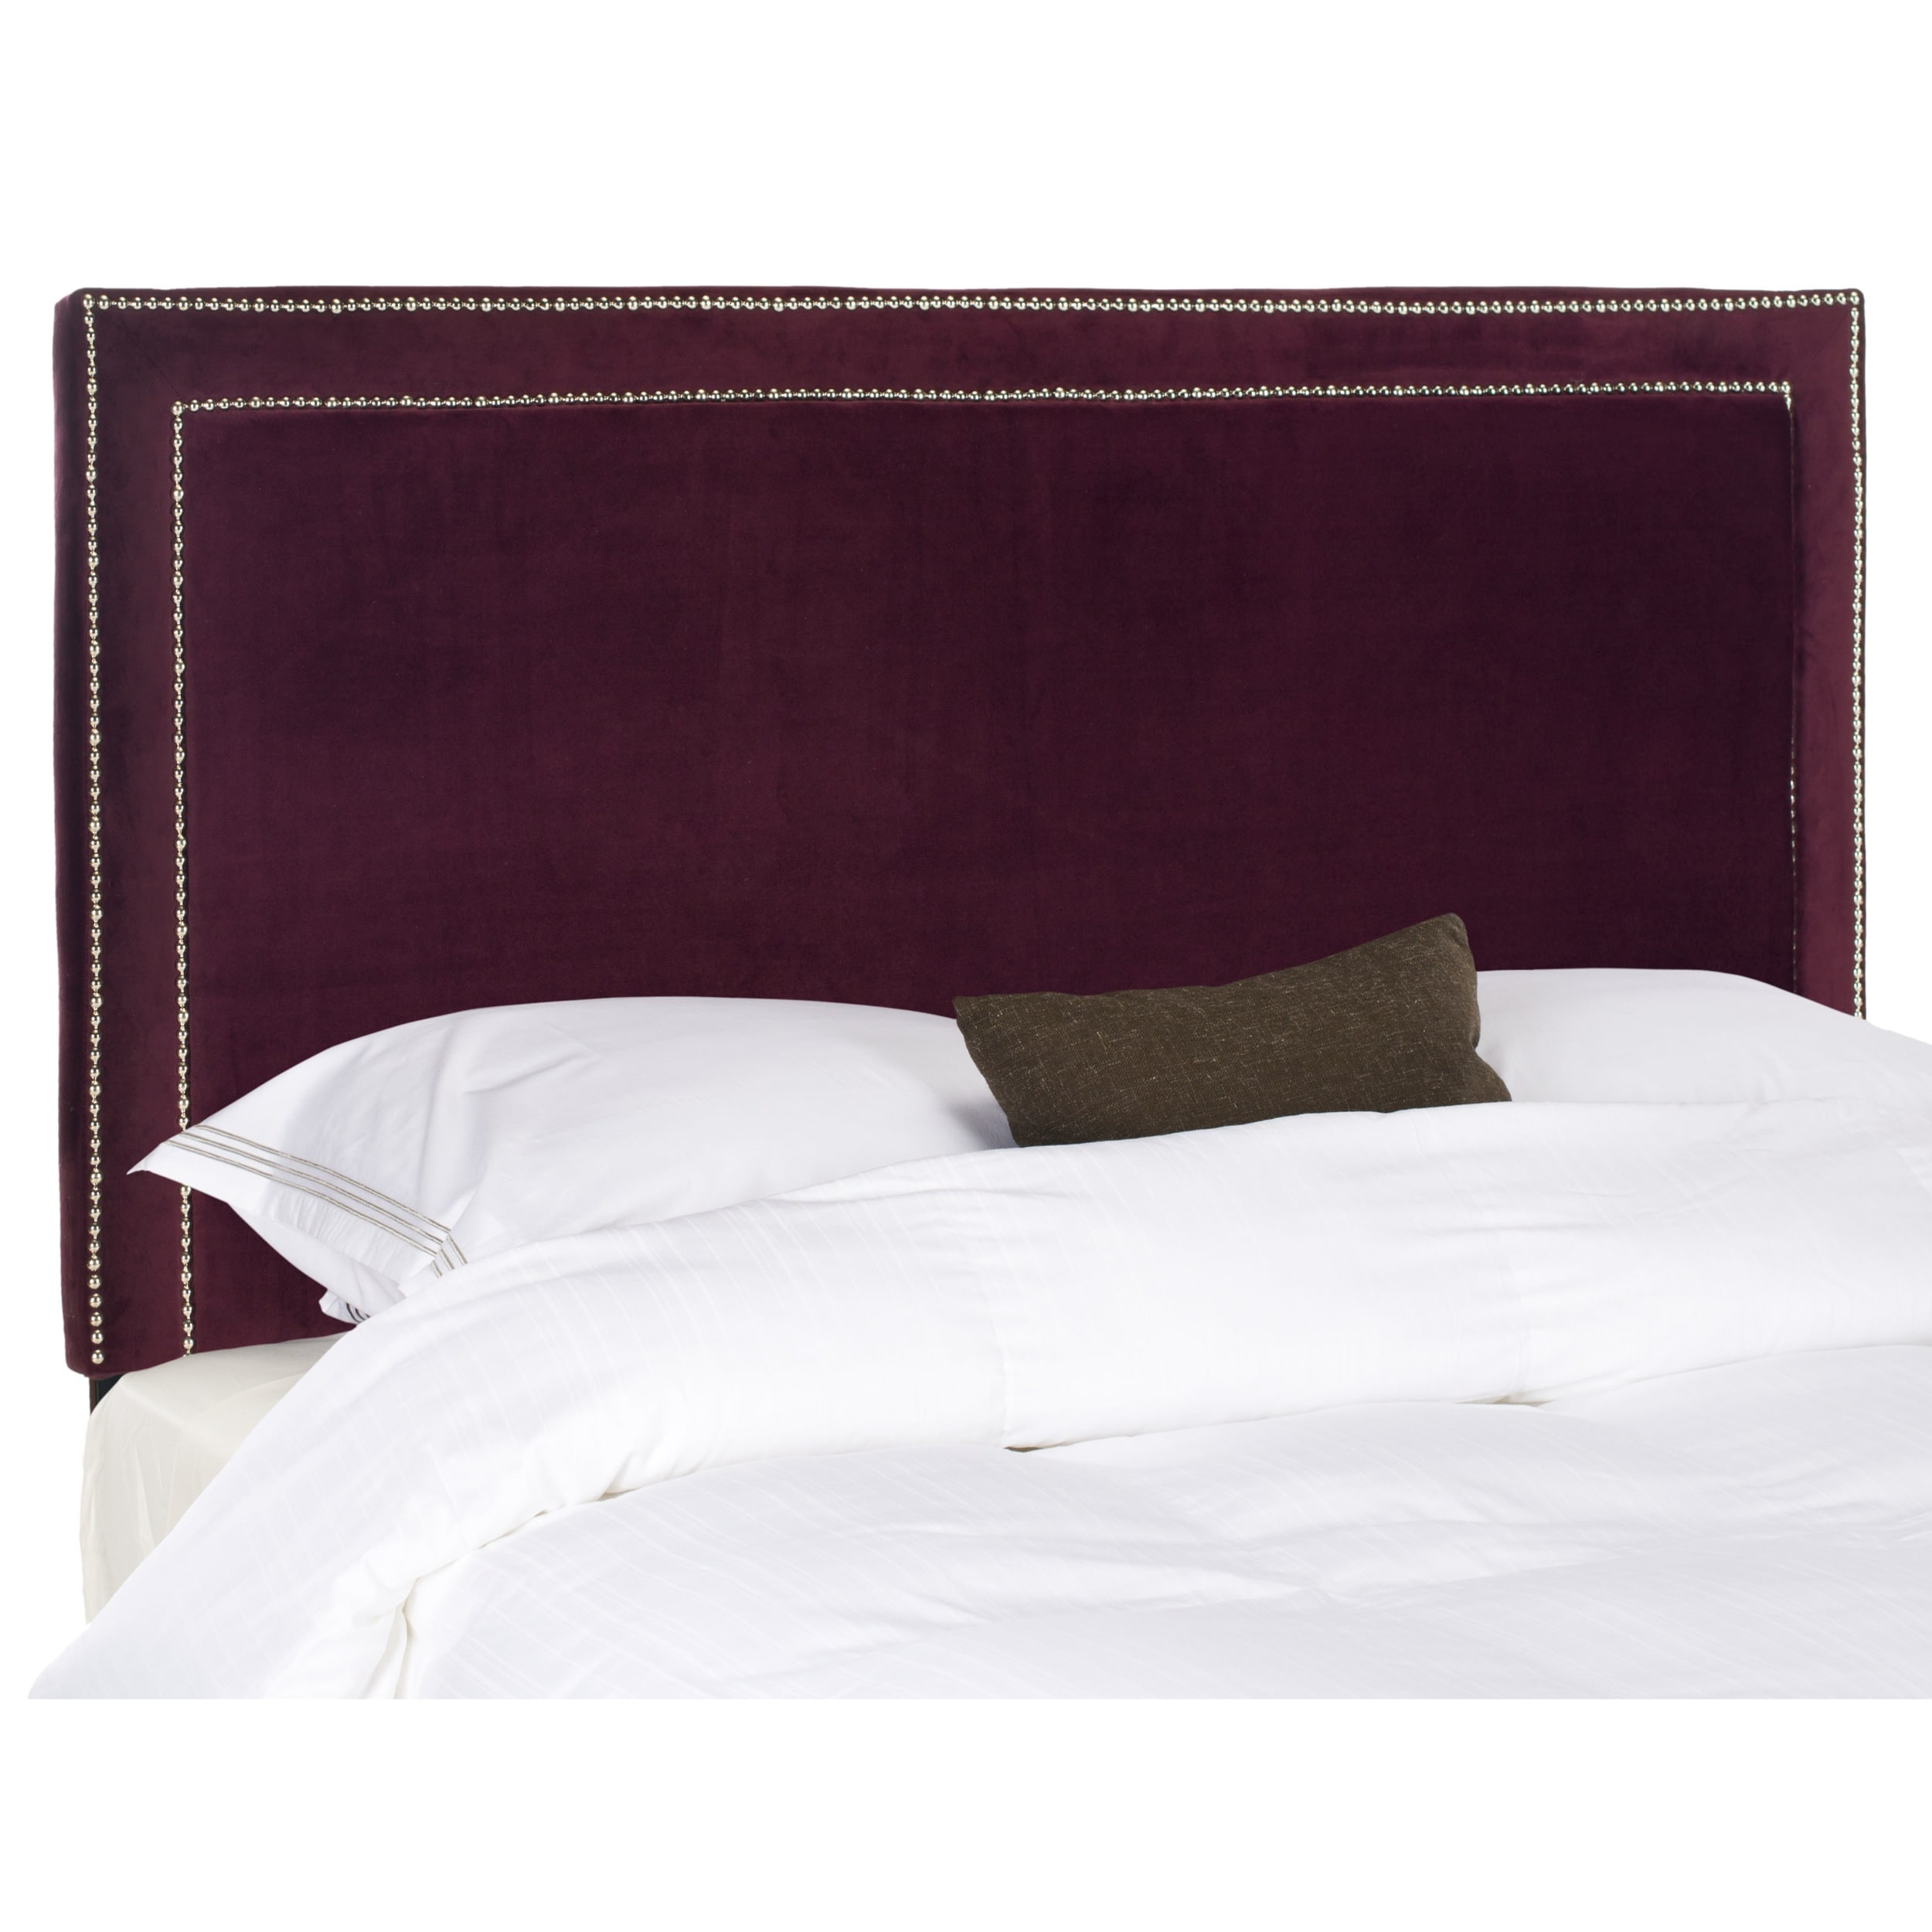 Shop safavieh cory bordeaux velvet upholstered headboard silver nailhead queen on sale free shipping today overstock com 7402066